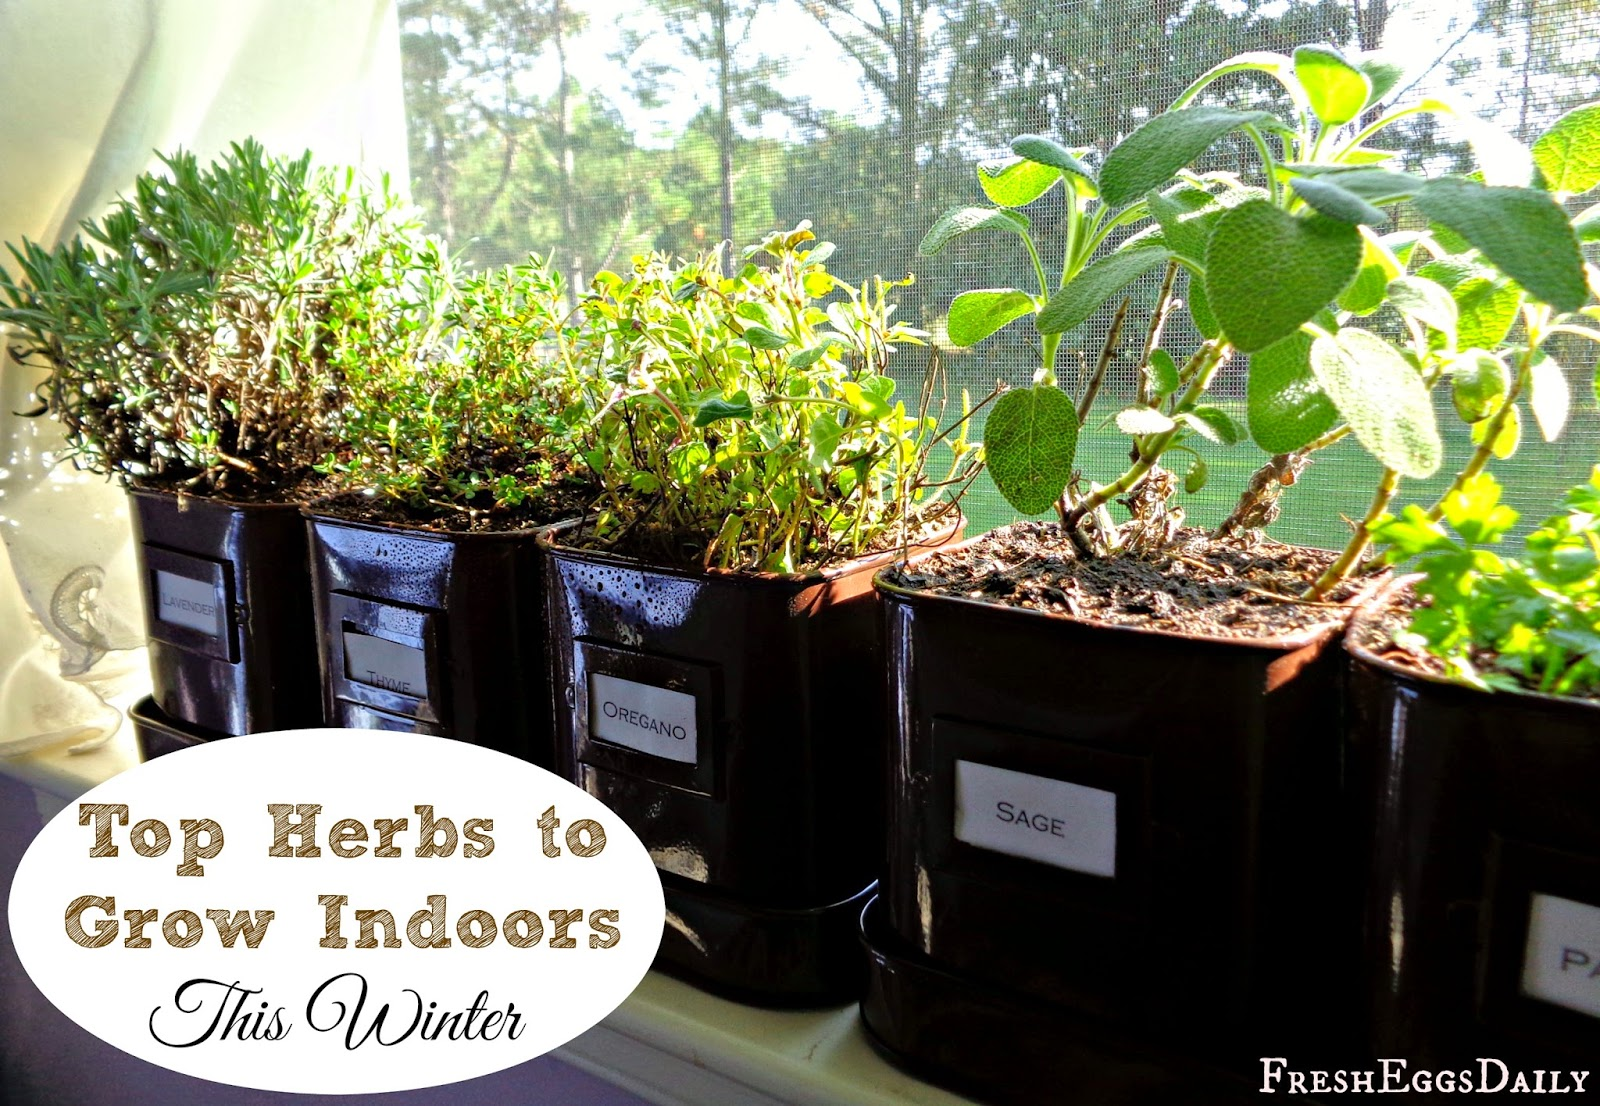 Herbs Pots Indoors Grow Herbs Indoors This Winter My Top Choices Fresh